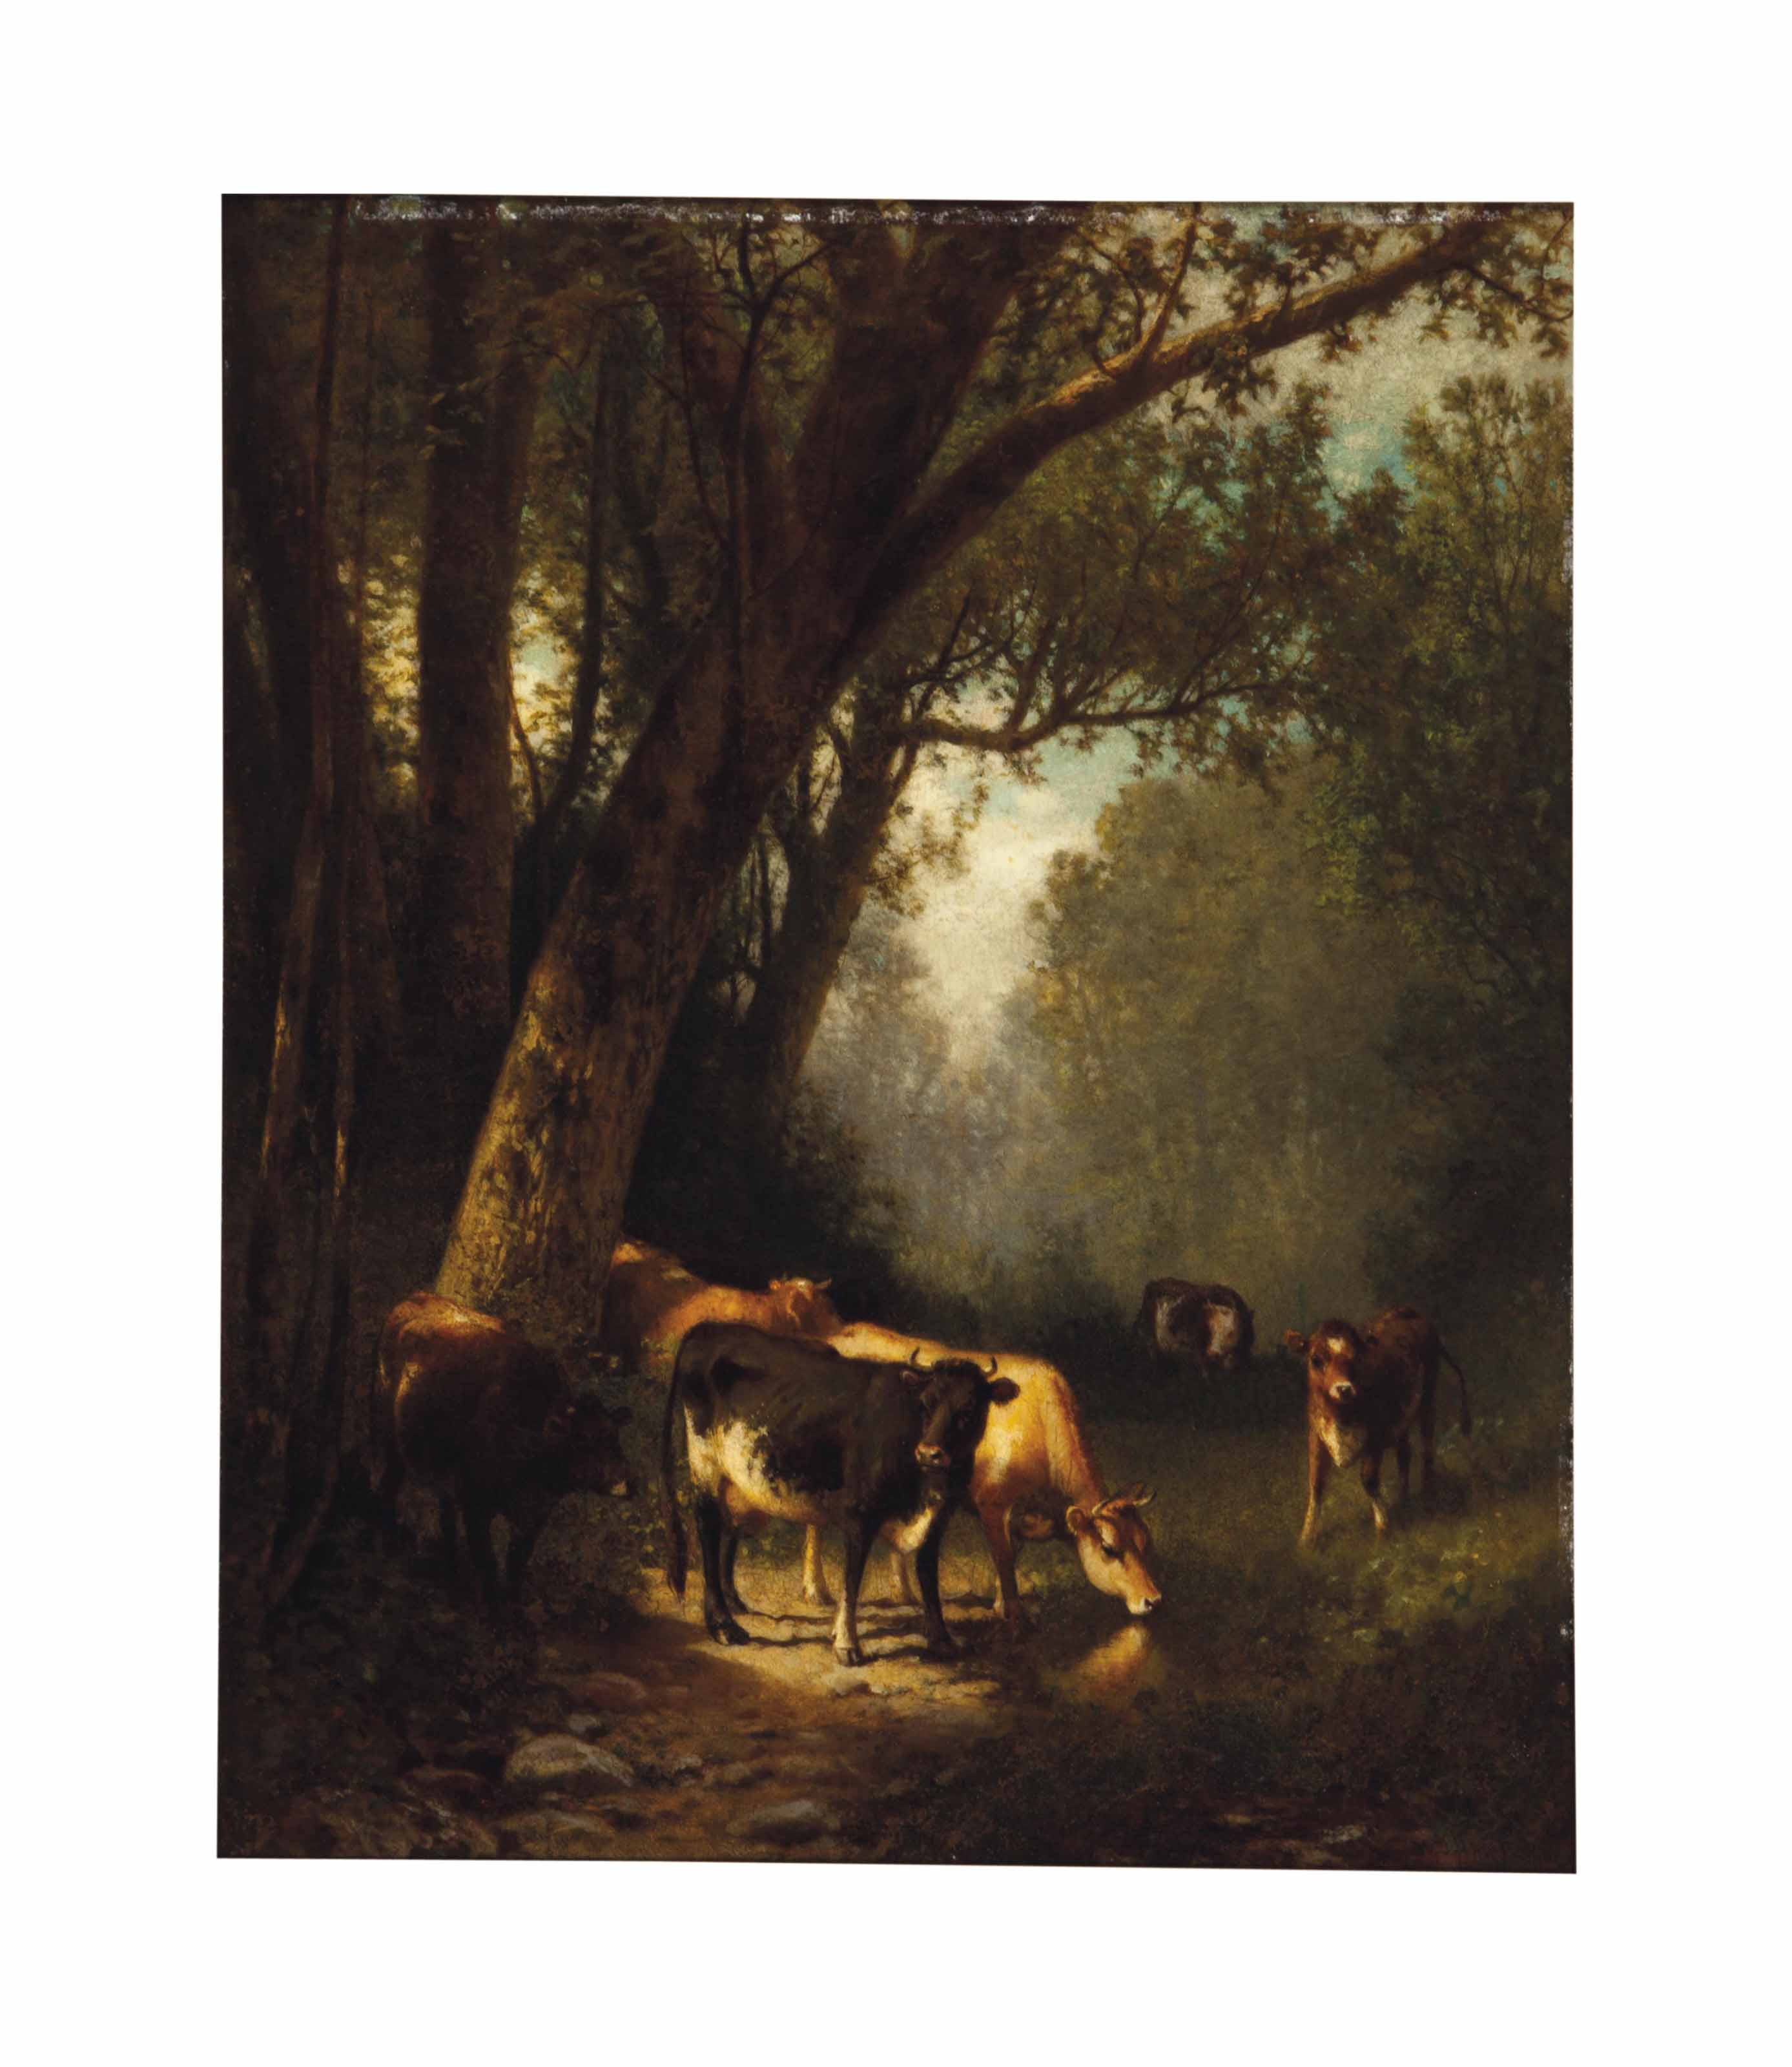 Cows grazing in the forest clearing